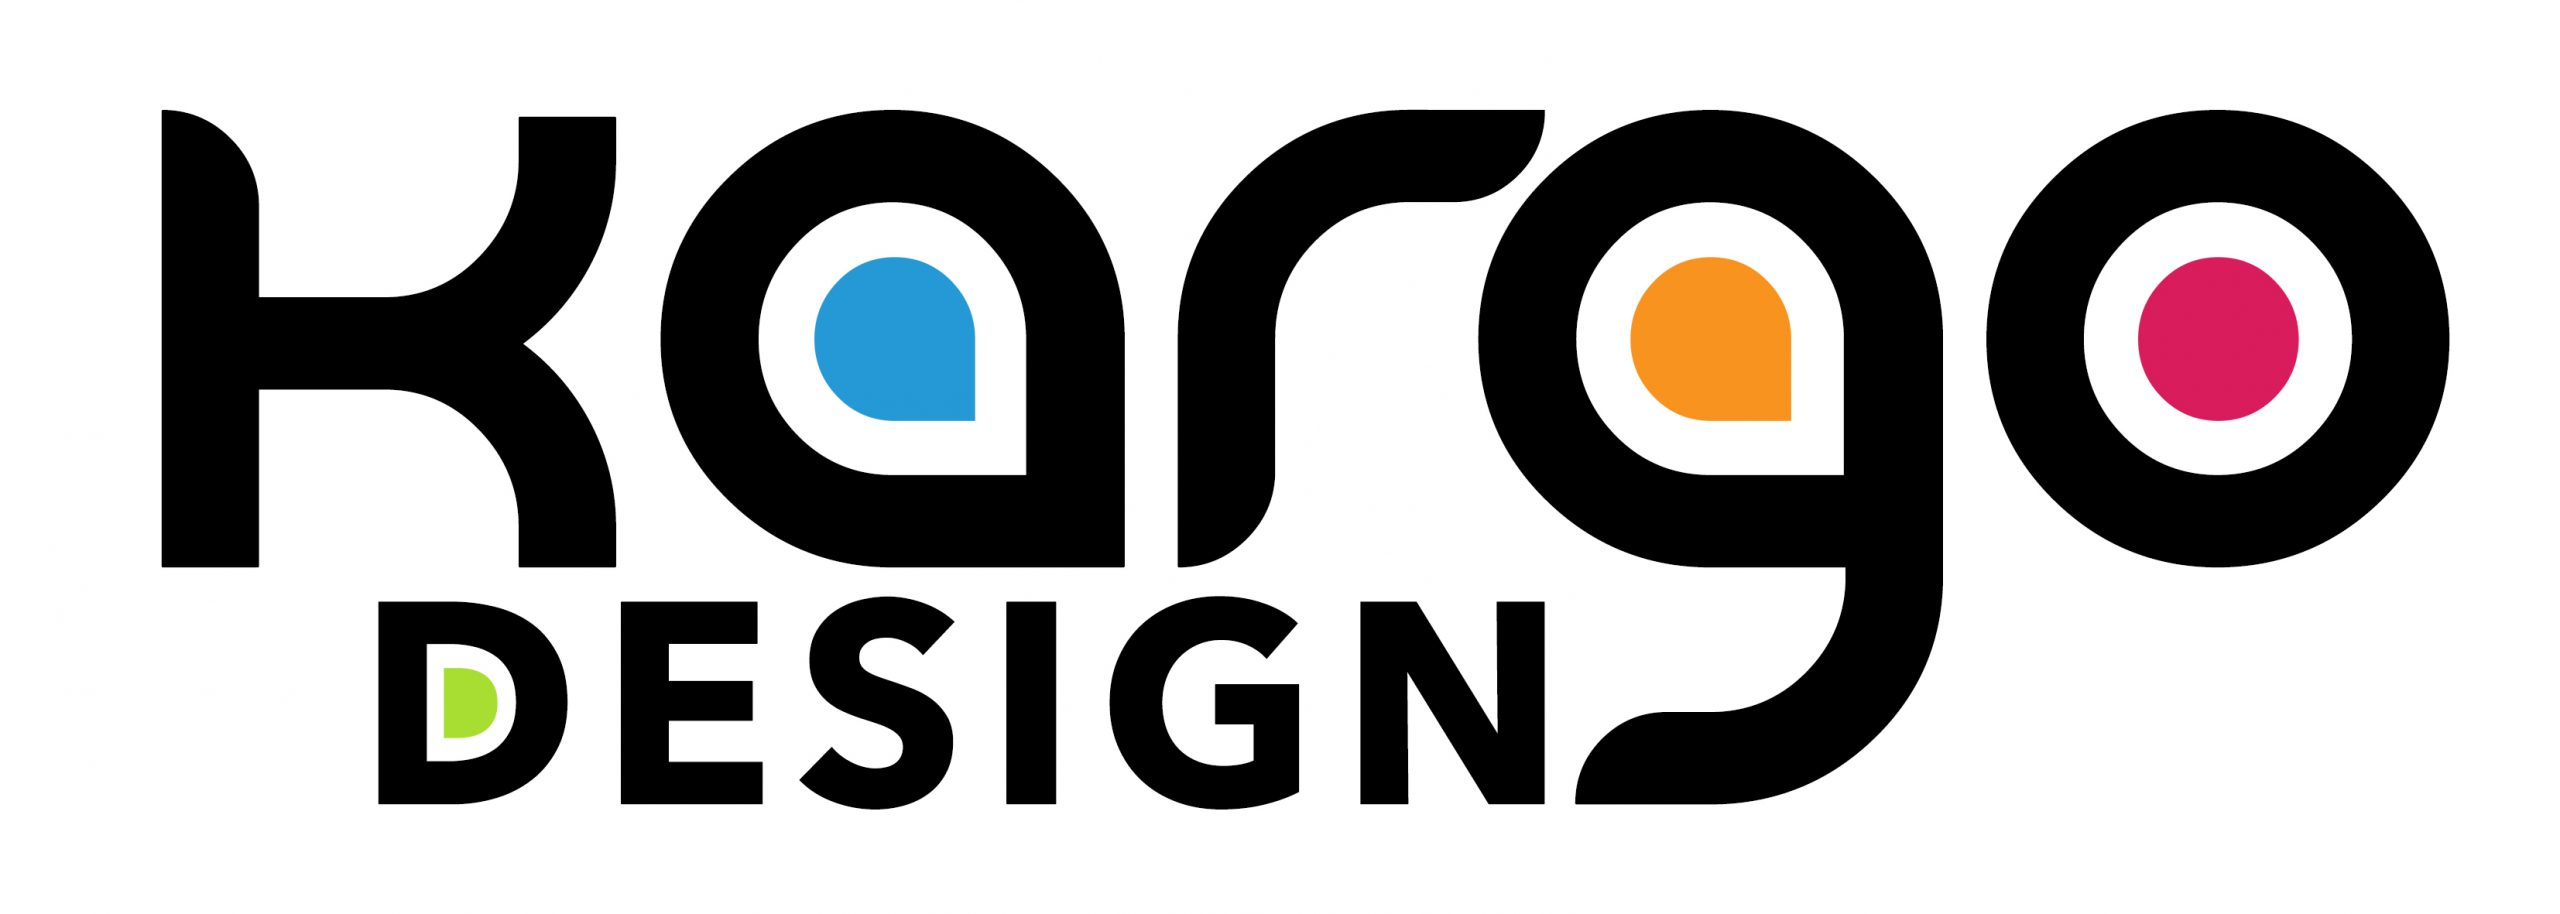 UK Digital Marketing Agency, Kargo Design Announces New Website Launch